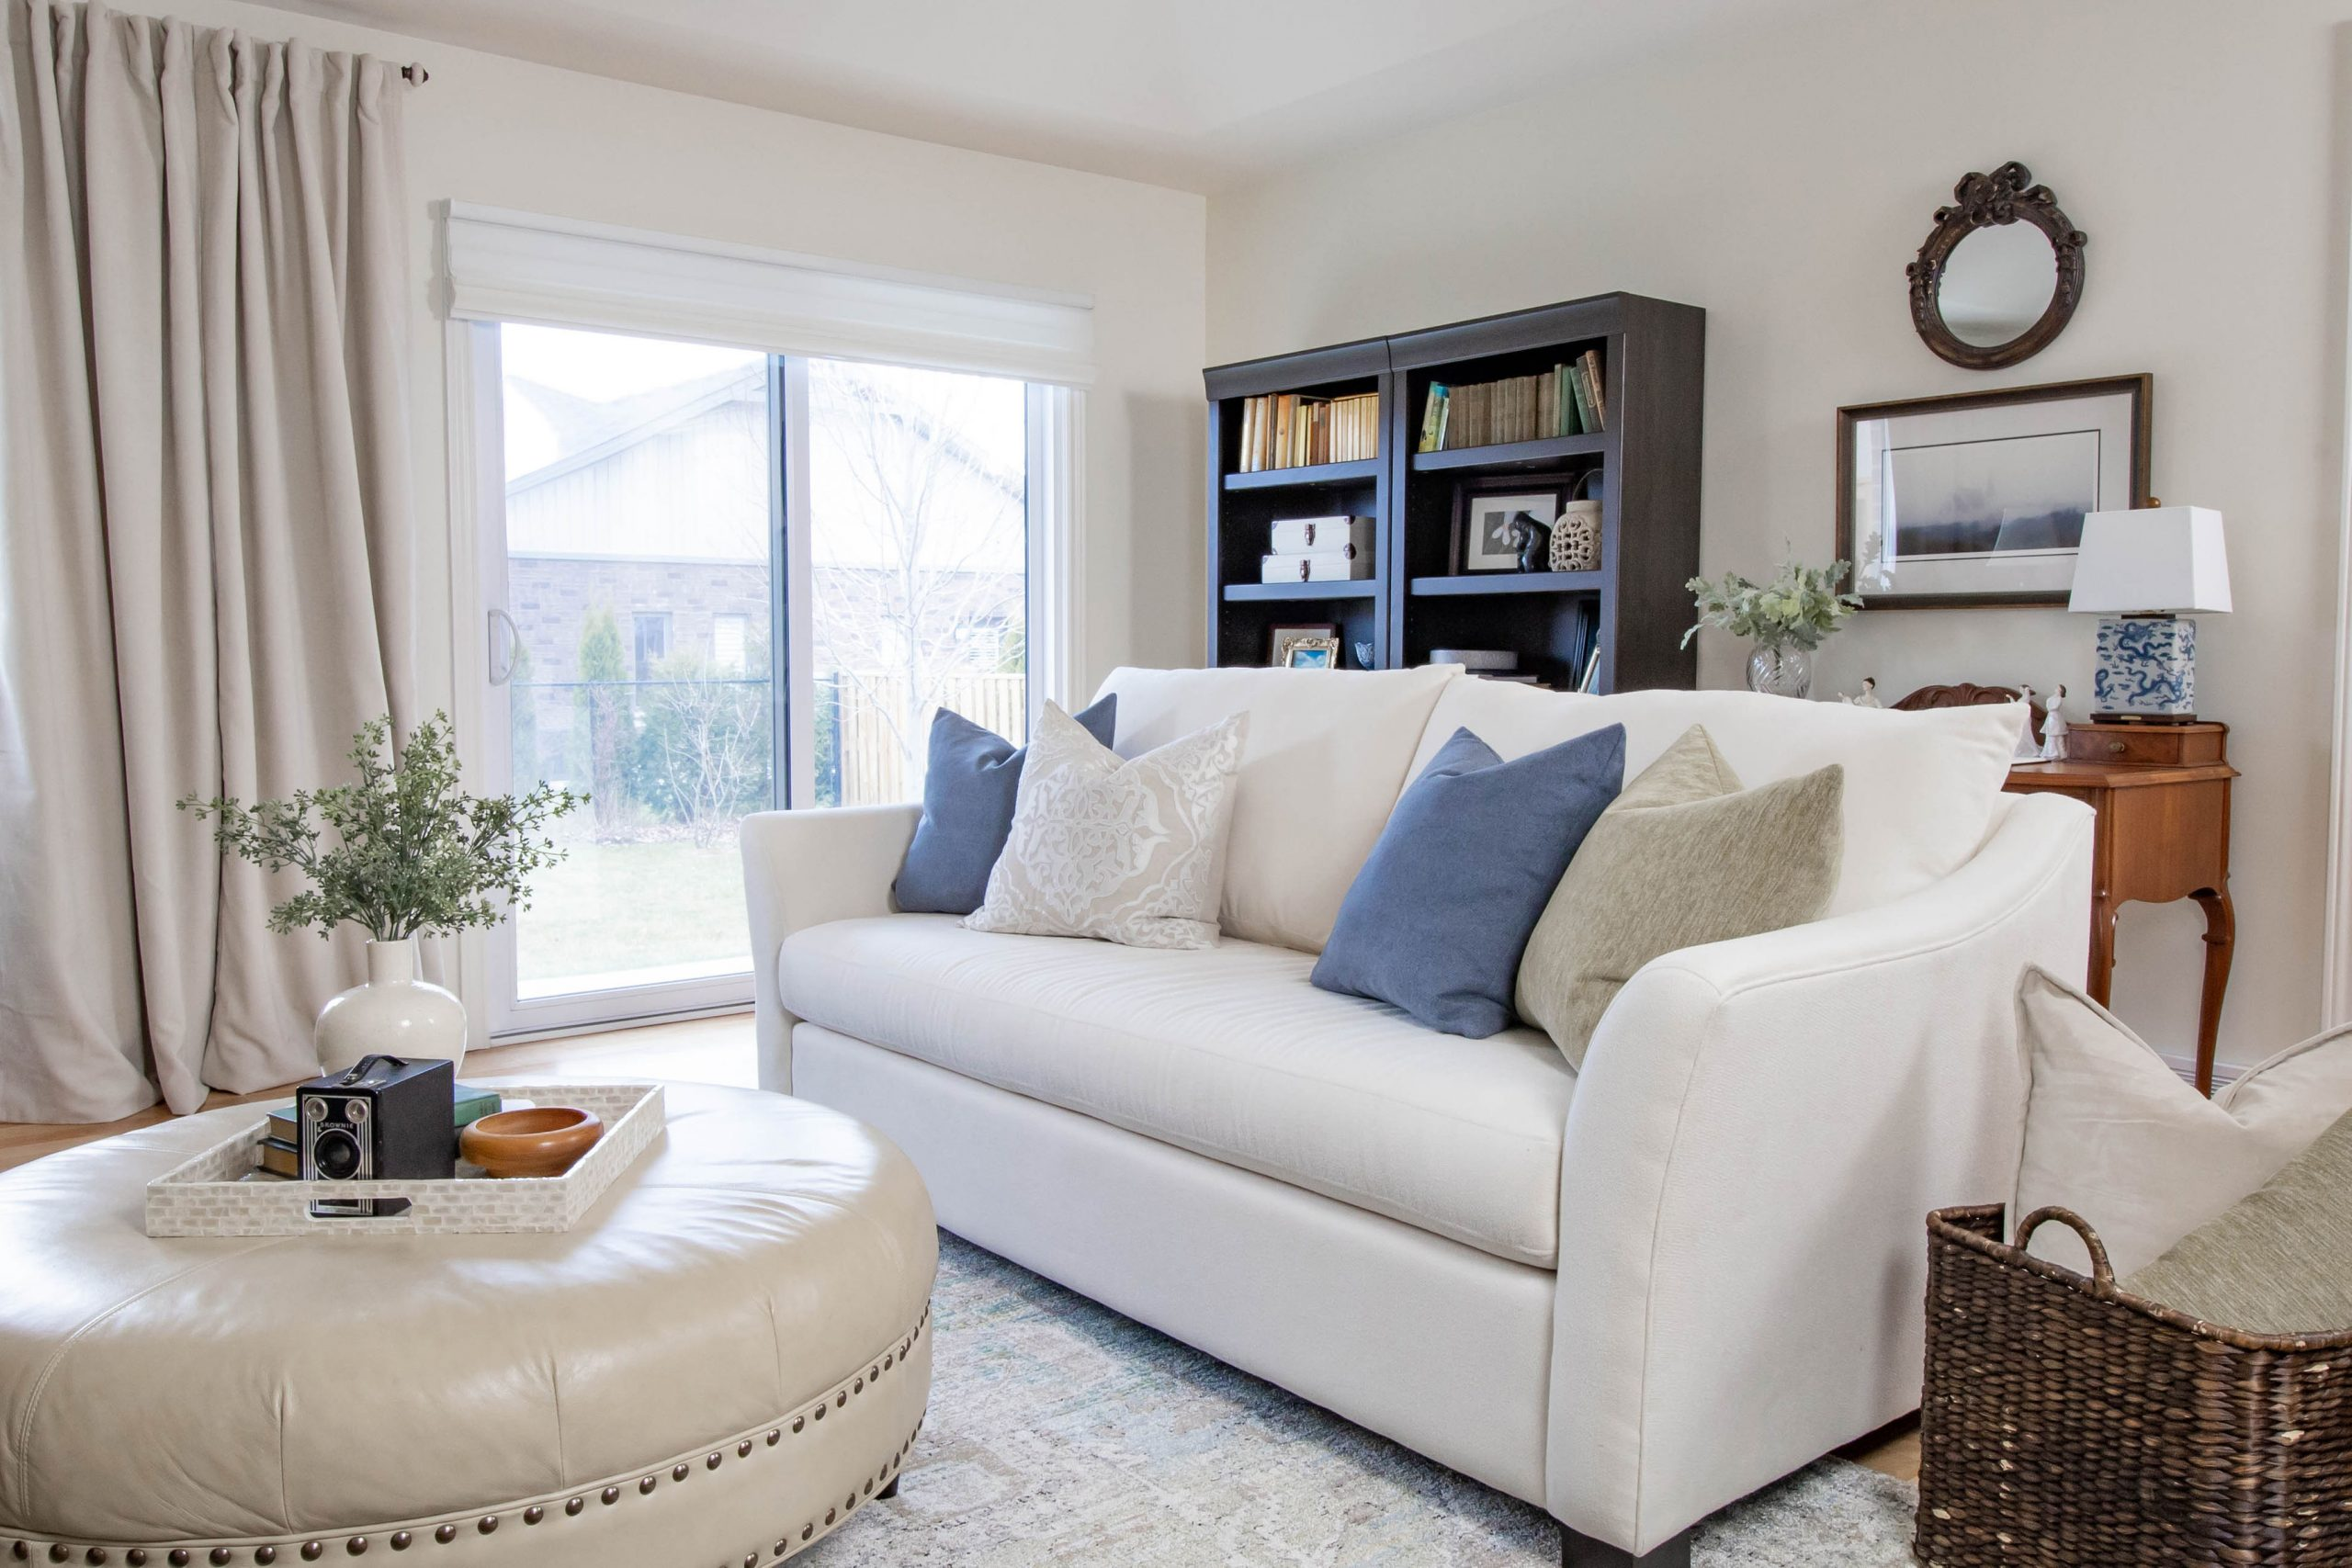 Light and airy modernized traditional design with european touches for this ivory living room in chatham